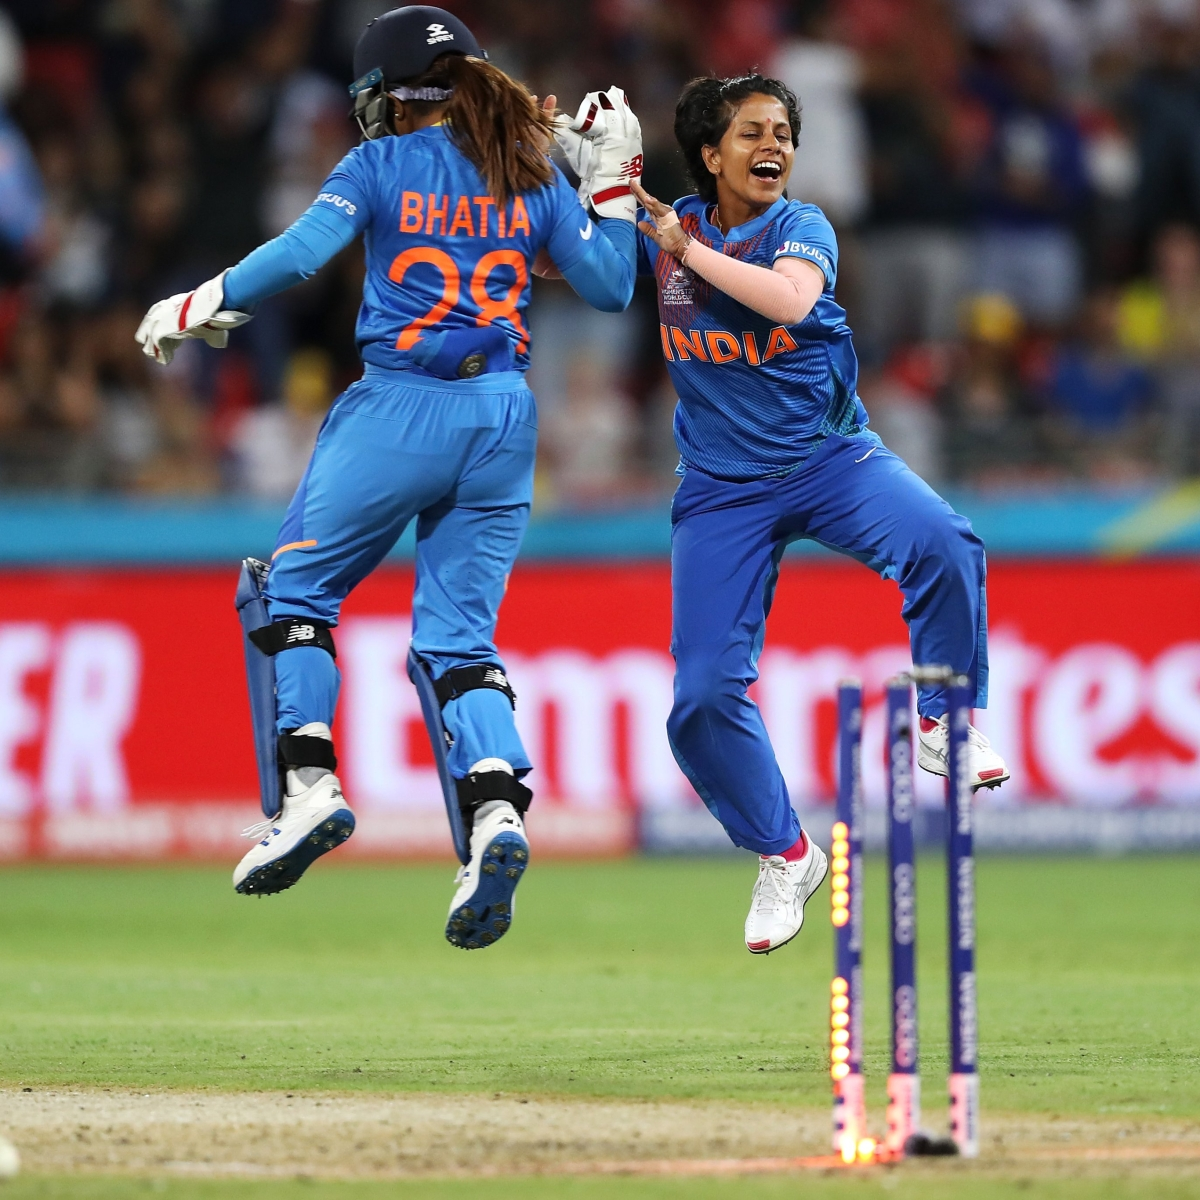 ICC Women's T20 World Cup AUS vs IND: Poonam Yadav, Taniya Bhatia star as India win by 17 runs